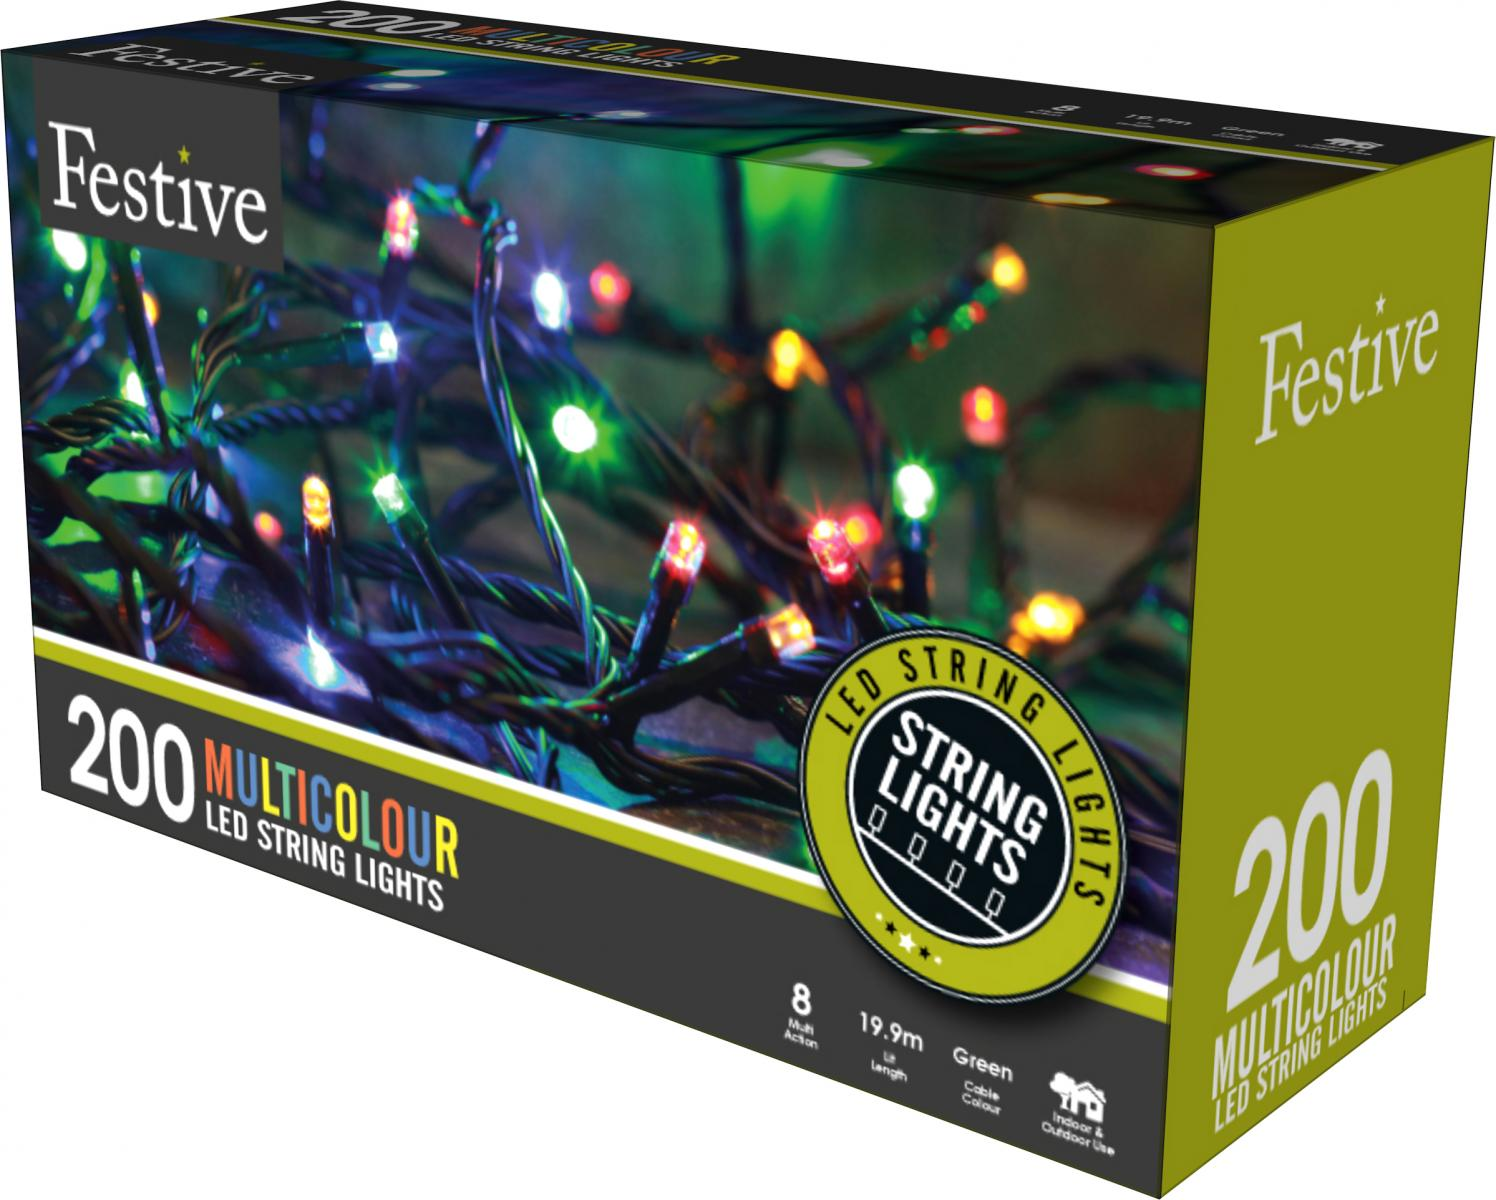 200lv LED lights with 8 multifunction controller with timer - Multicolour – Now Only £15.00